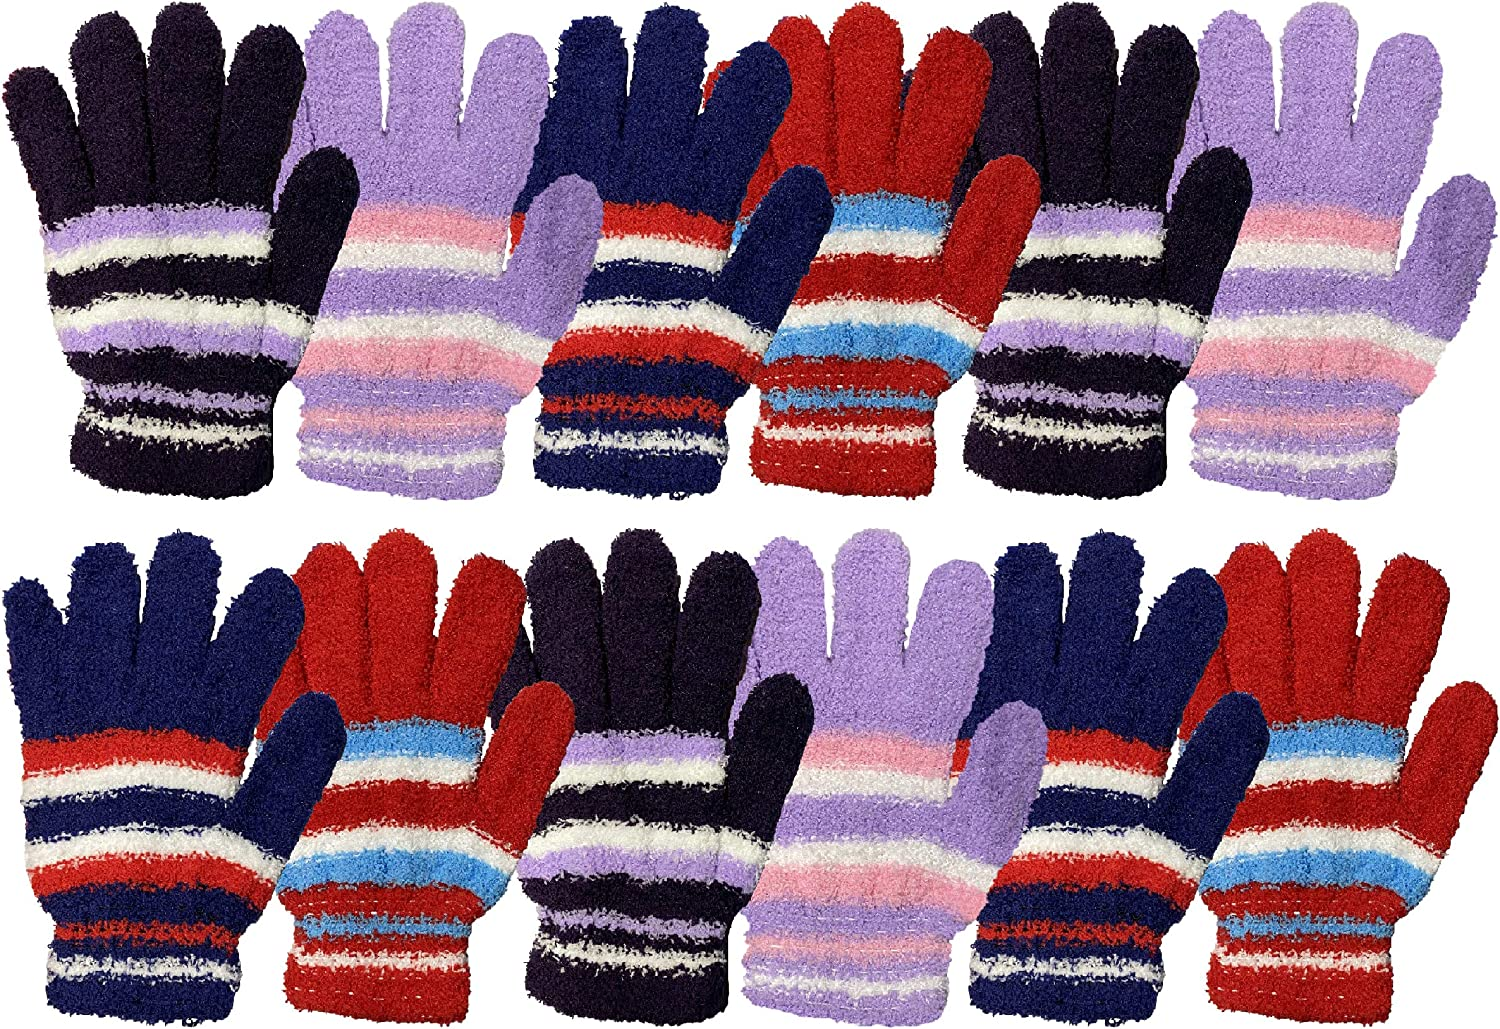 Yacht & Smith Women's Fuzzy Winter Gloves, Magic Stretch, Purple Red and Navy Blue, Soft Furry, Bulk (Stripes (Assorted), 12 PACK)